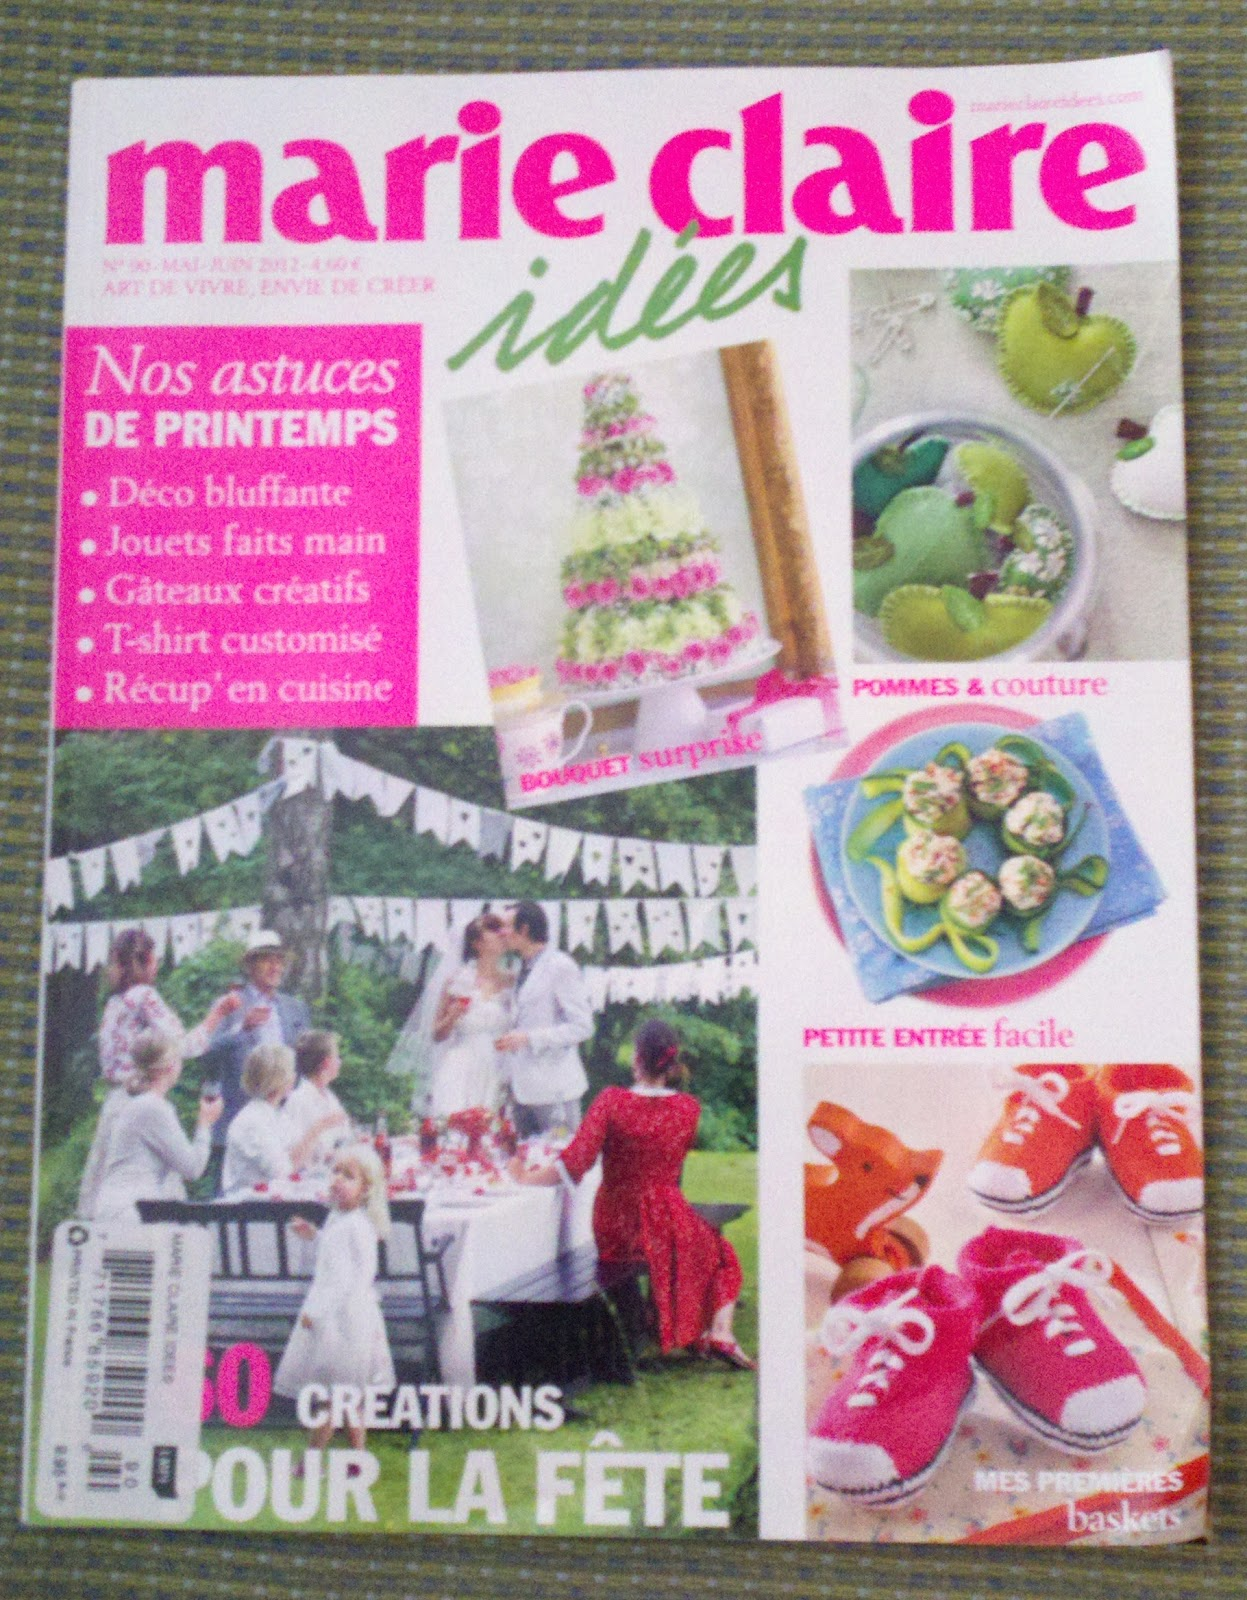 gingerbread girl 39 s quilting adventures j 39 adore marie claire idees. Black Bedroom Furniture Sets. Home Design Ideas